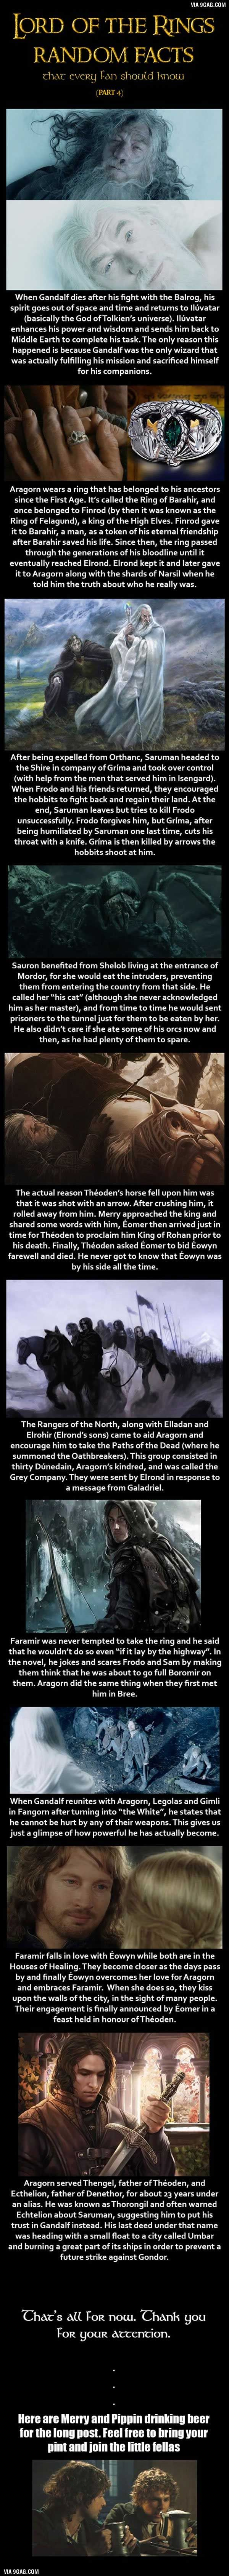 """A new infographic from the """"The Lord of the Rings: Ramdom Facts That Every Fan Should Know"""" series. If you missed the previous parts, they're here: Part 1, P"""